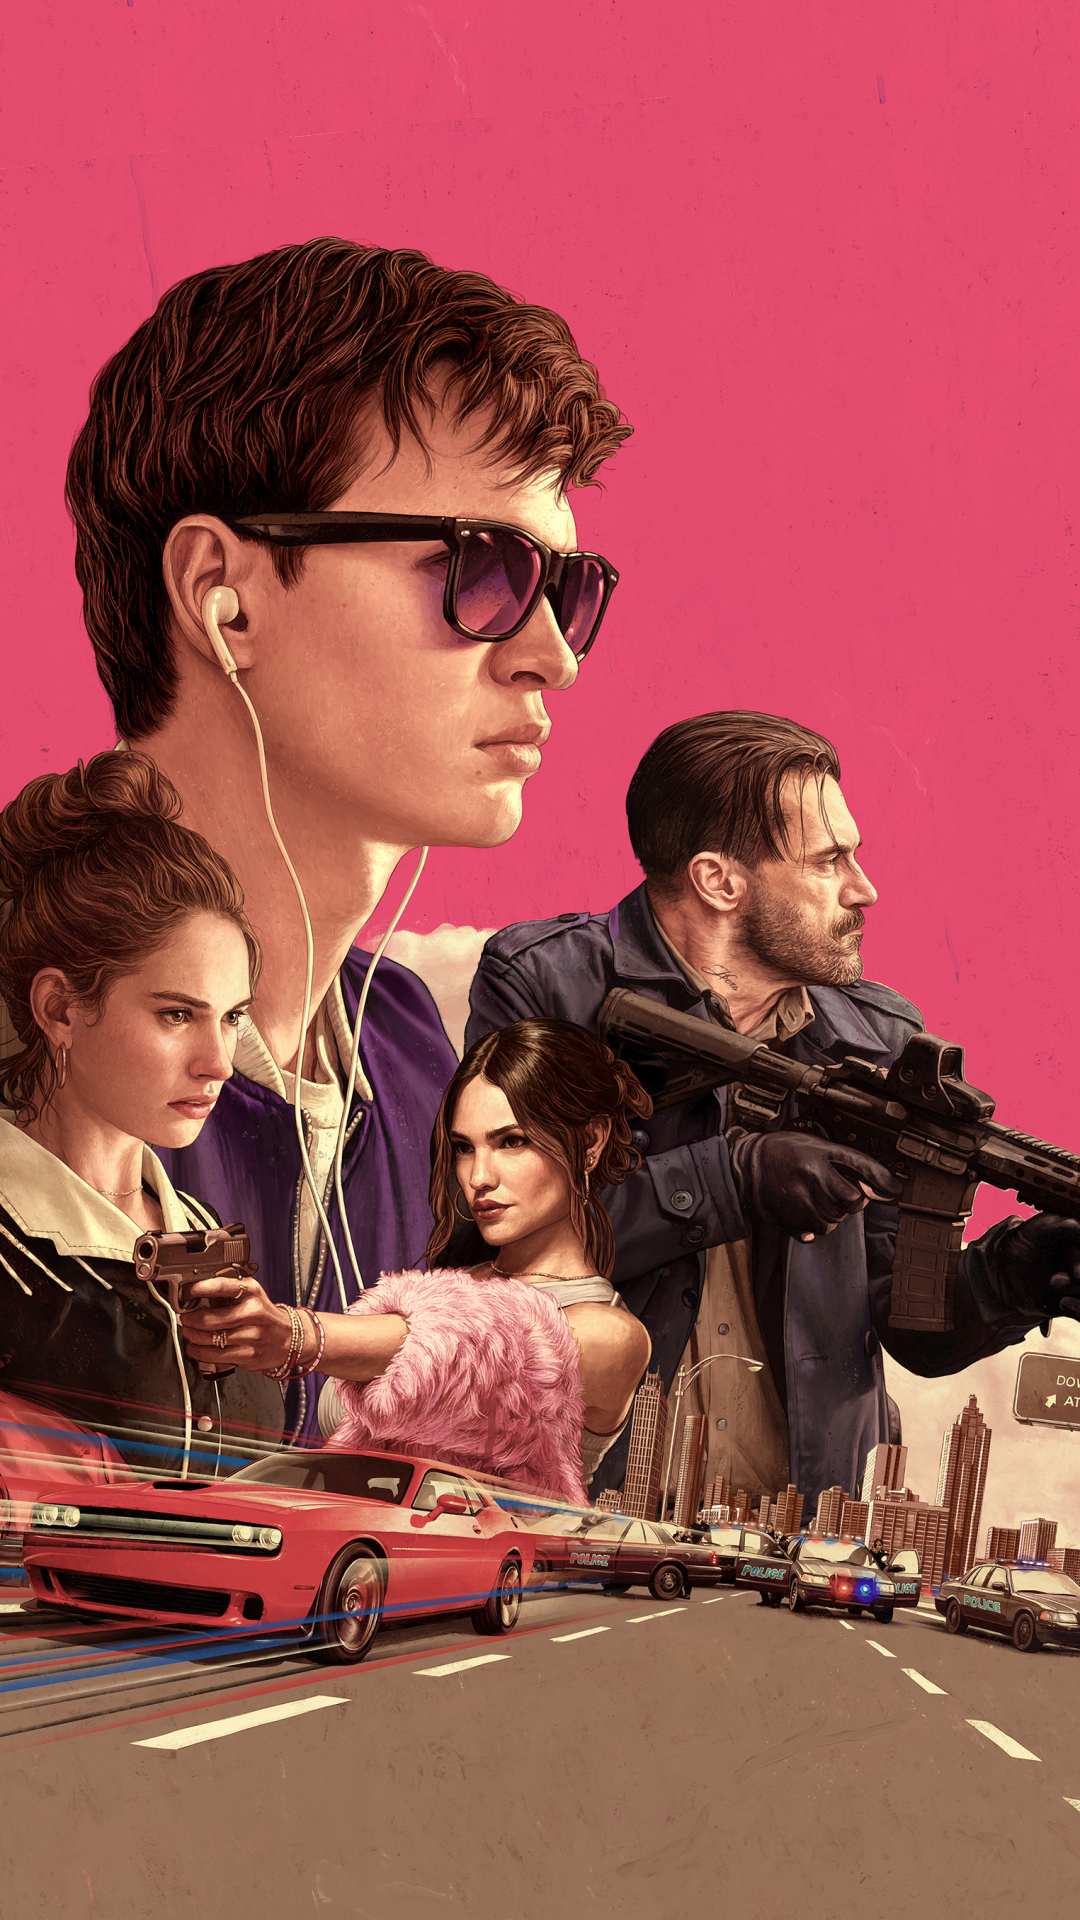 MovieBaby Driver 1080x1920 Wallpaper ID 735420   Mobile Abyss 1080x1920